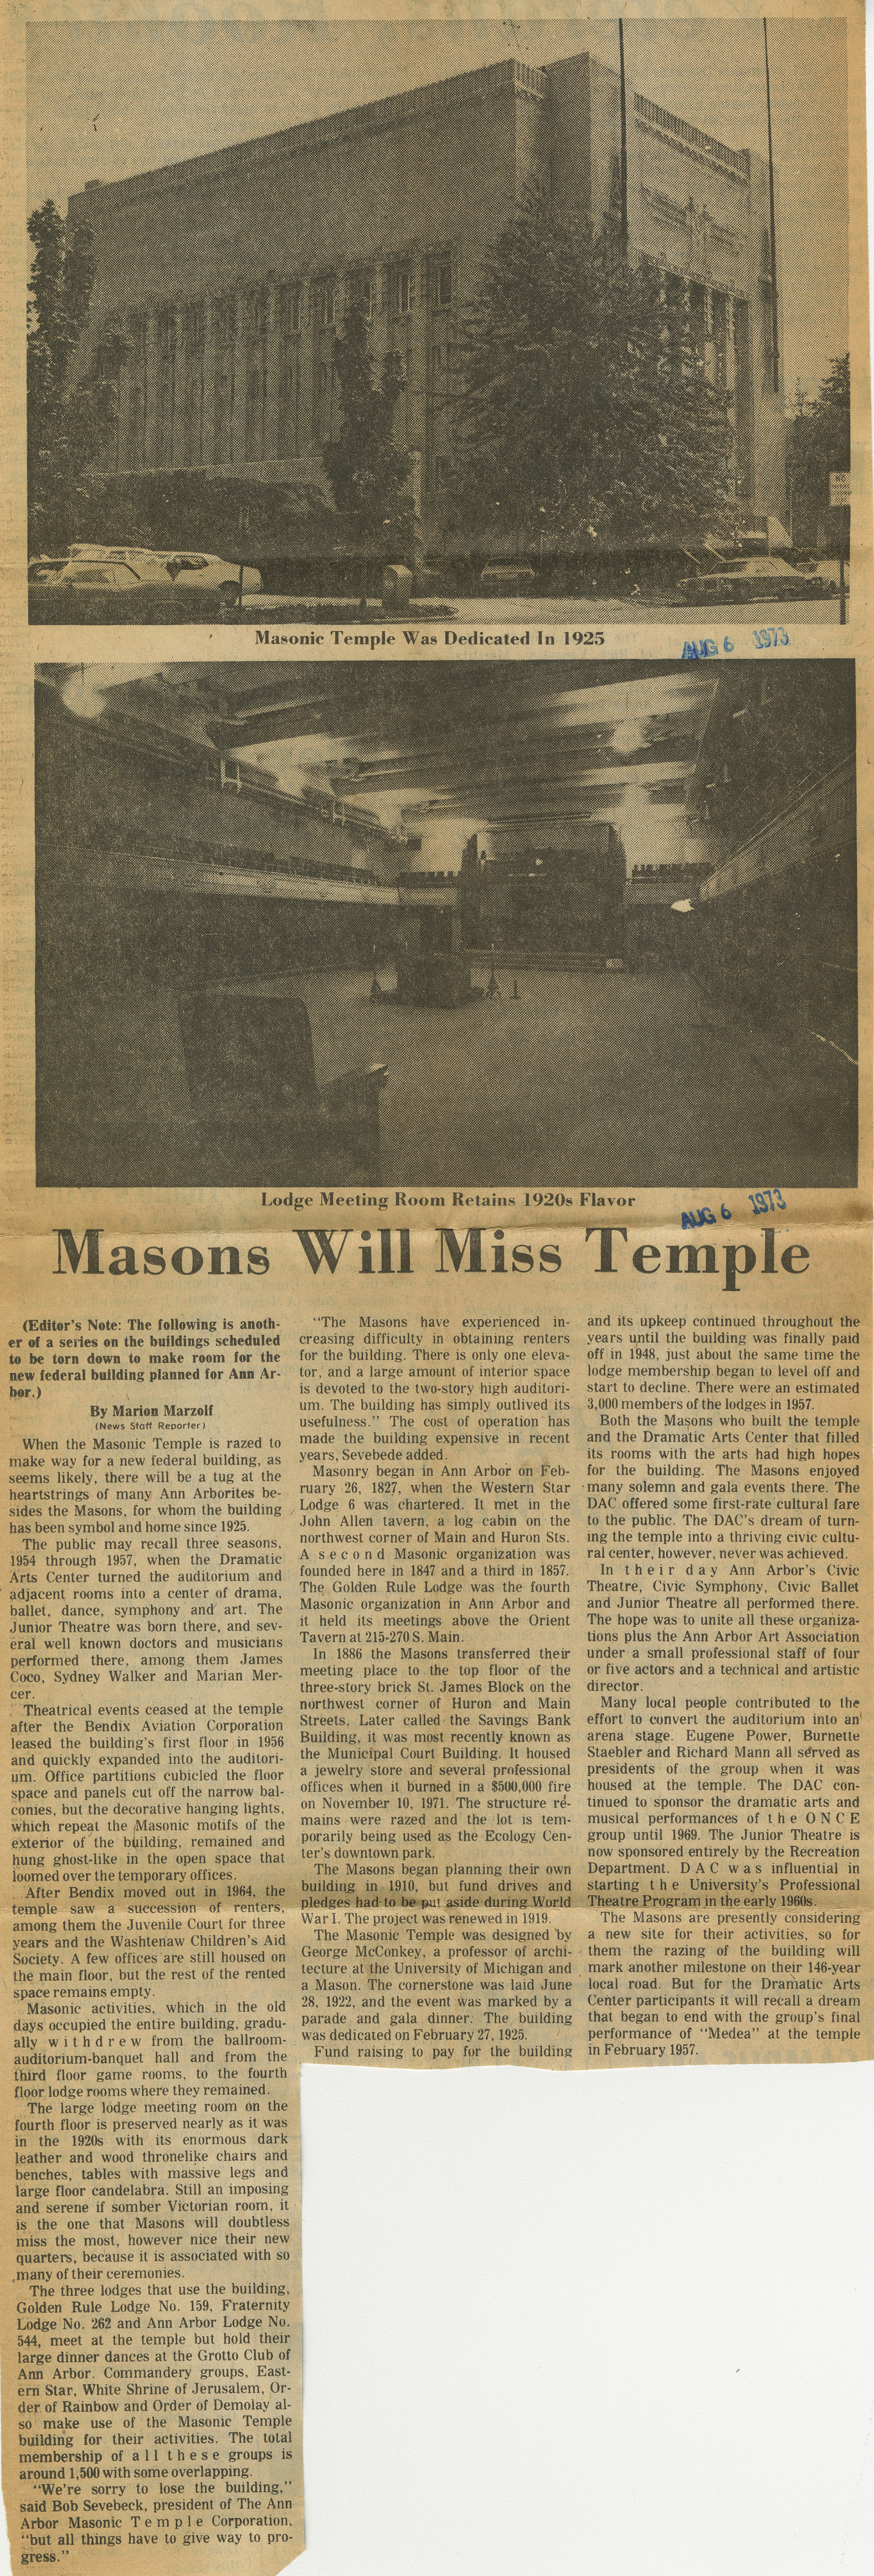 Masons Will Miss Temple image